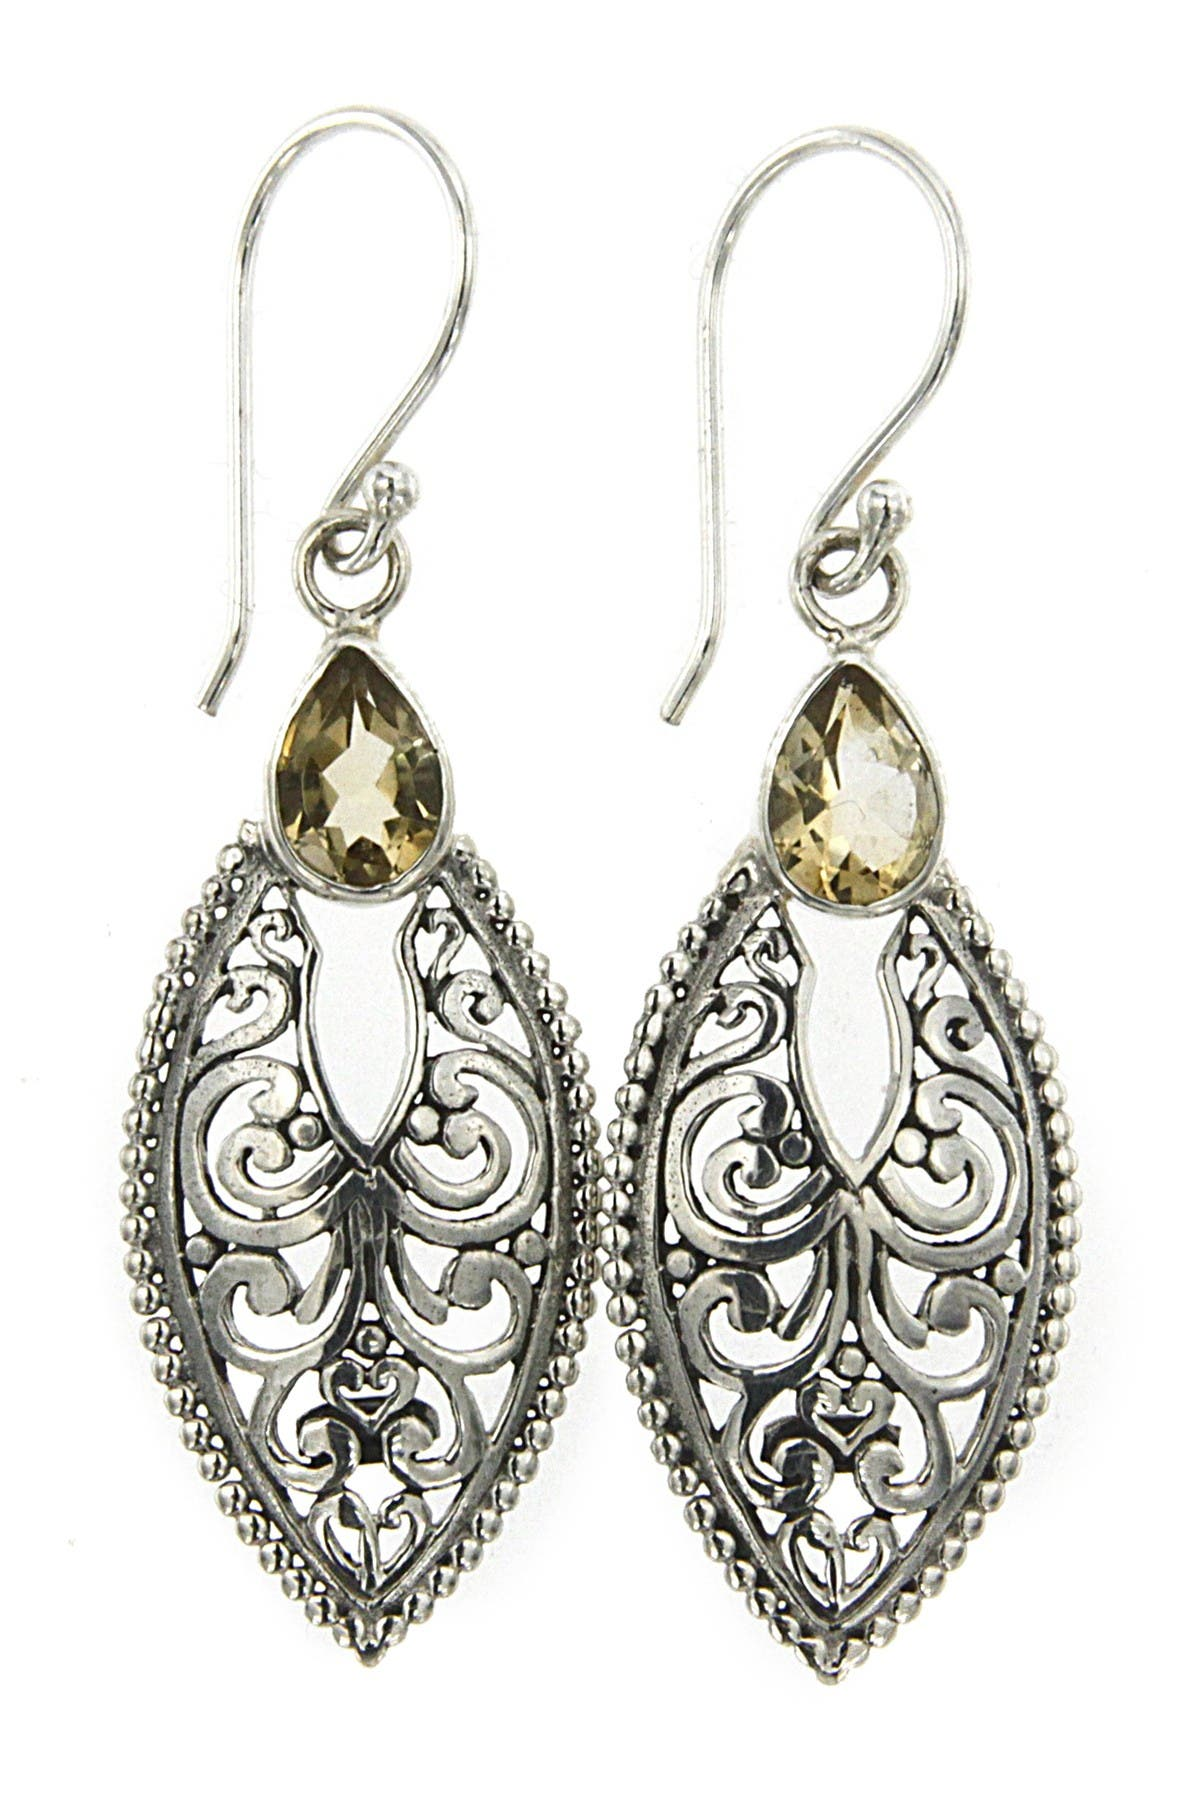 Image of Samuel B Jewelry Sterling Silver Bali Design Marquise Citrine Earrings